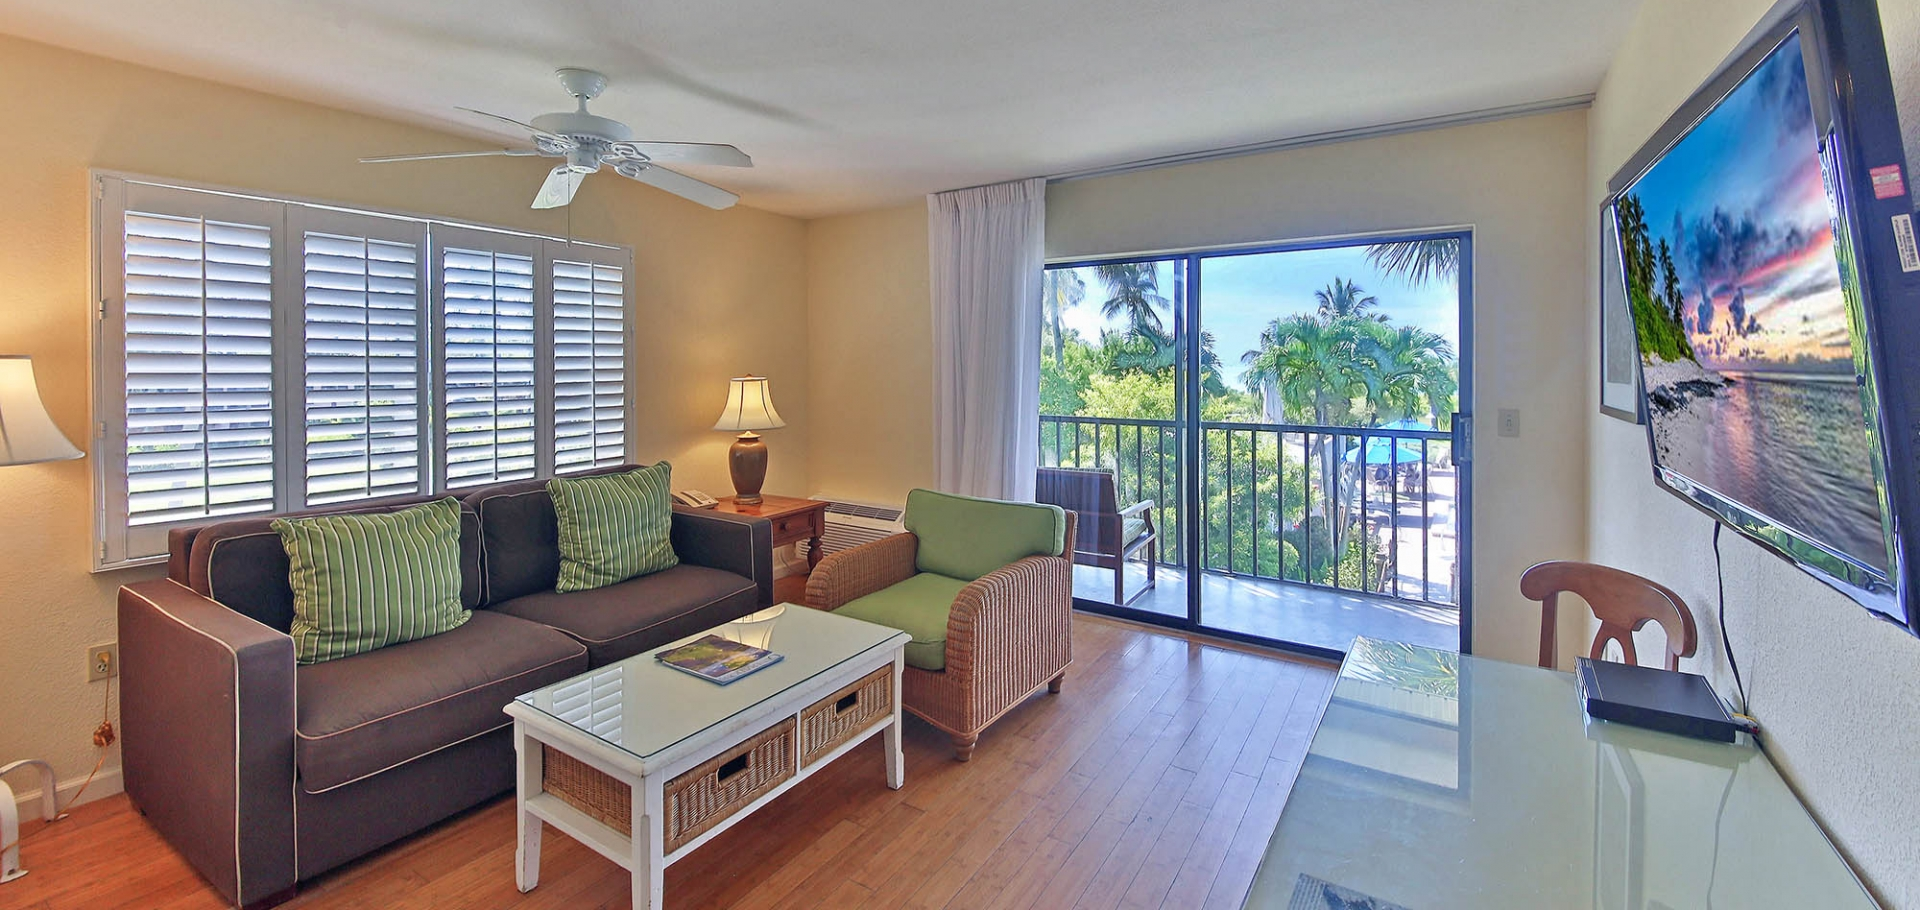 Sanibel Inn living area and balcony view